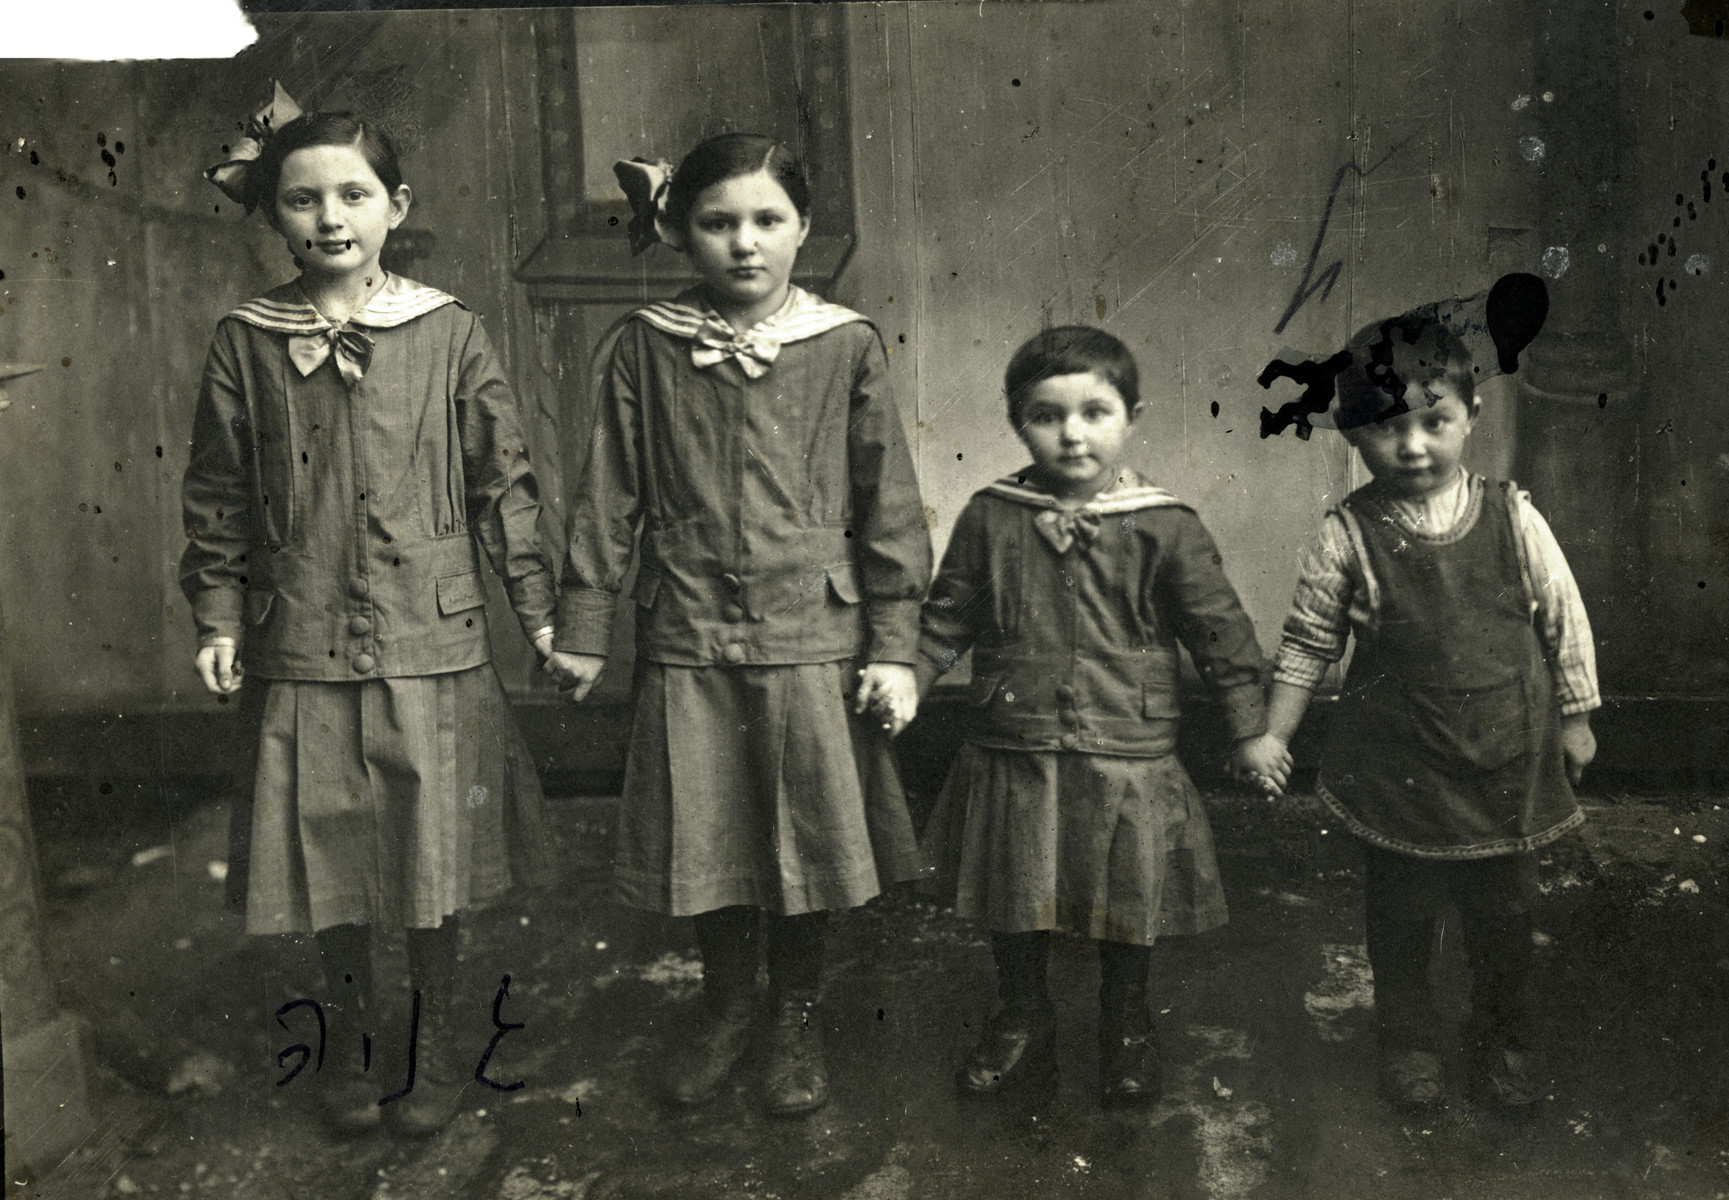 Studio portrait of the four oldest Volovelski children.  From left to right are Genya, Scheinche, Sara, and Moshe.